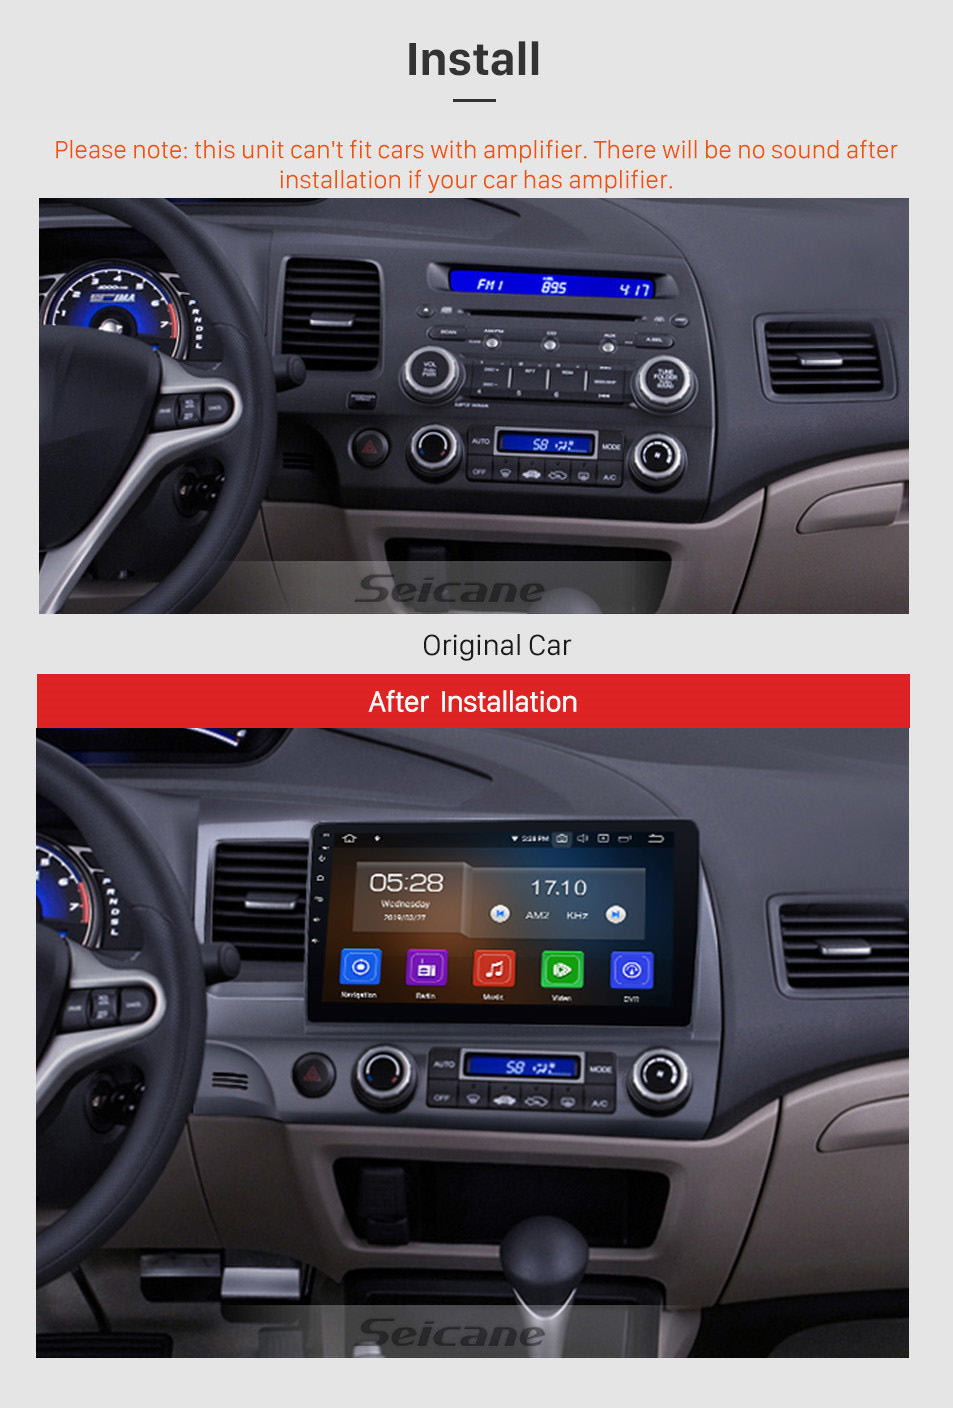 Seicane Android 10.0 Autoradio Navigation Aftermarket Stereo for 2006-2011 Honda Civic with 3G WiFi DVD Radio RDS Bluetooth Mirror Link OBD2 Steering Wheel Control AUX